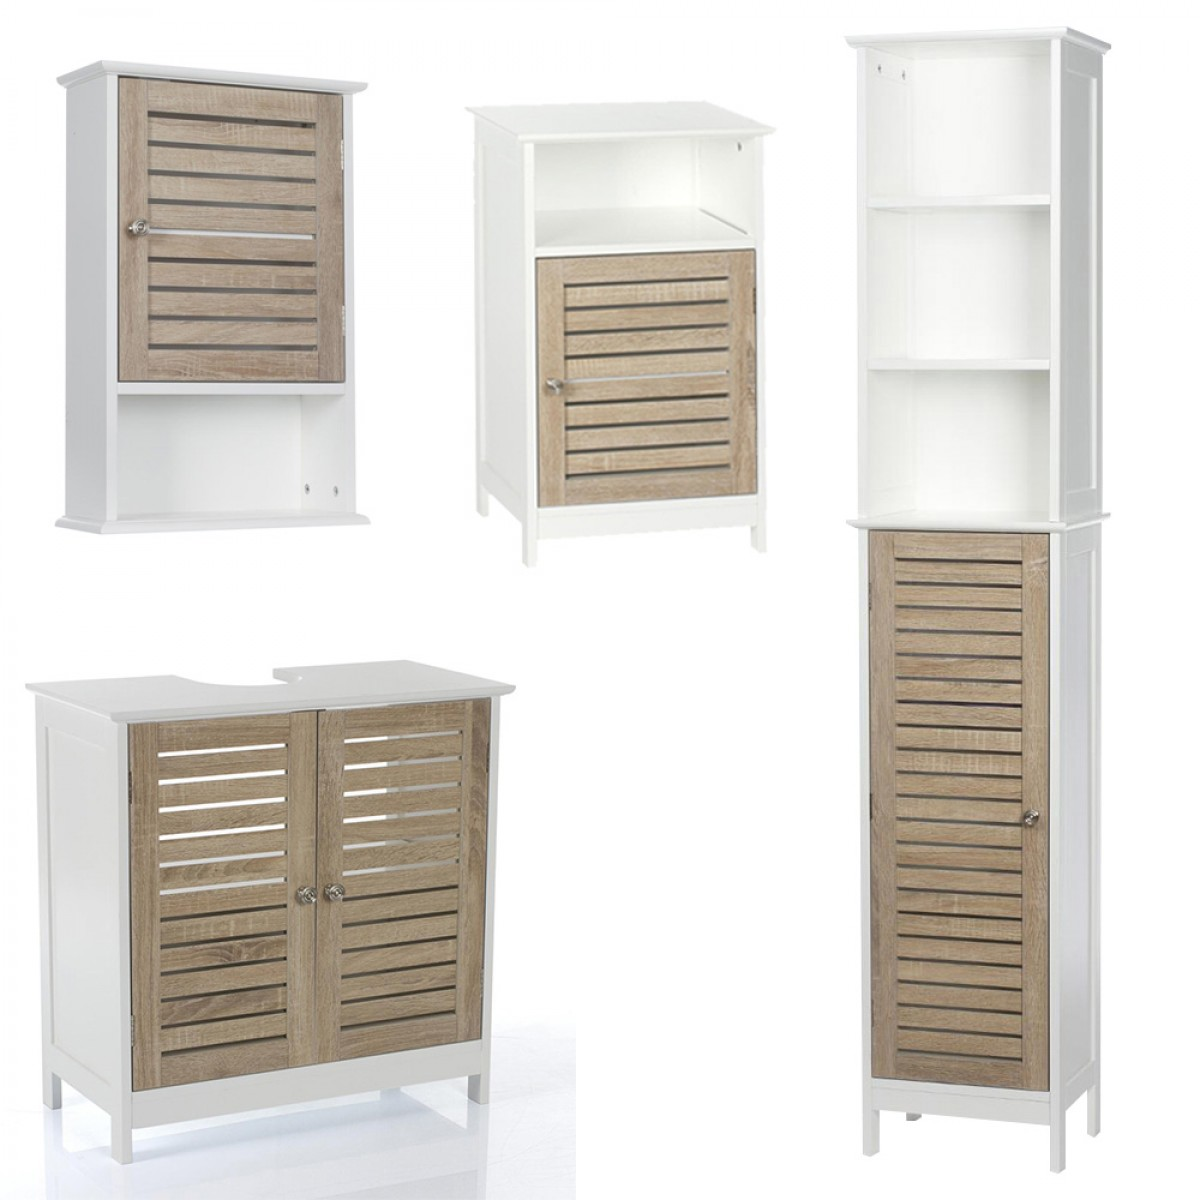 meuble dessous lavabo blanc bois les douces nuits de ma linge de maison. Black Bedroom Furniture Sets. Home Design Ideas